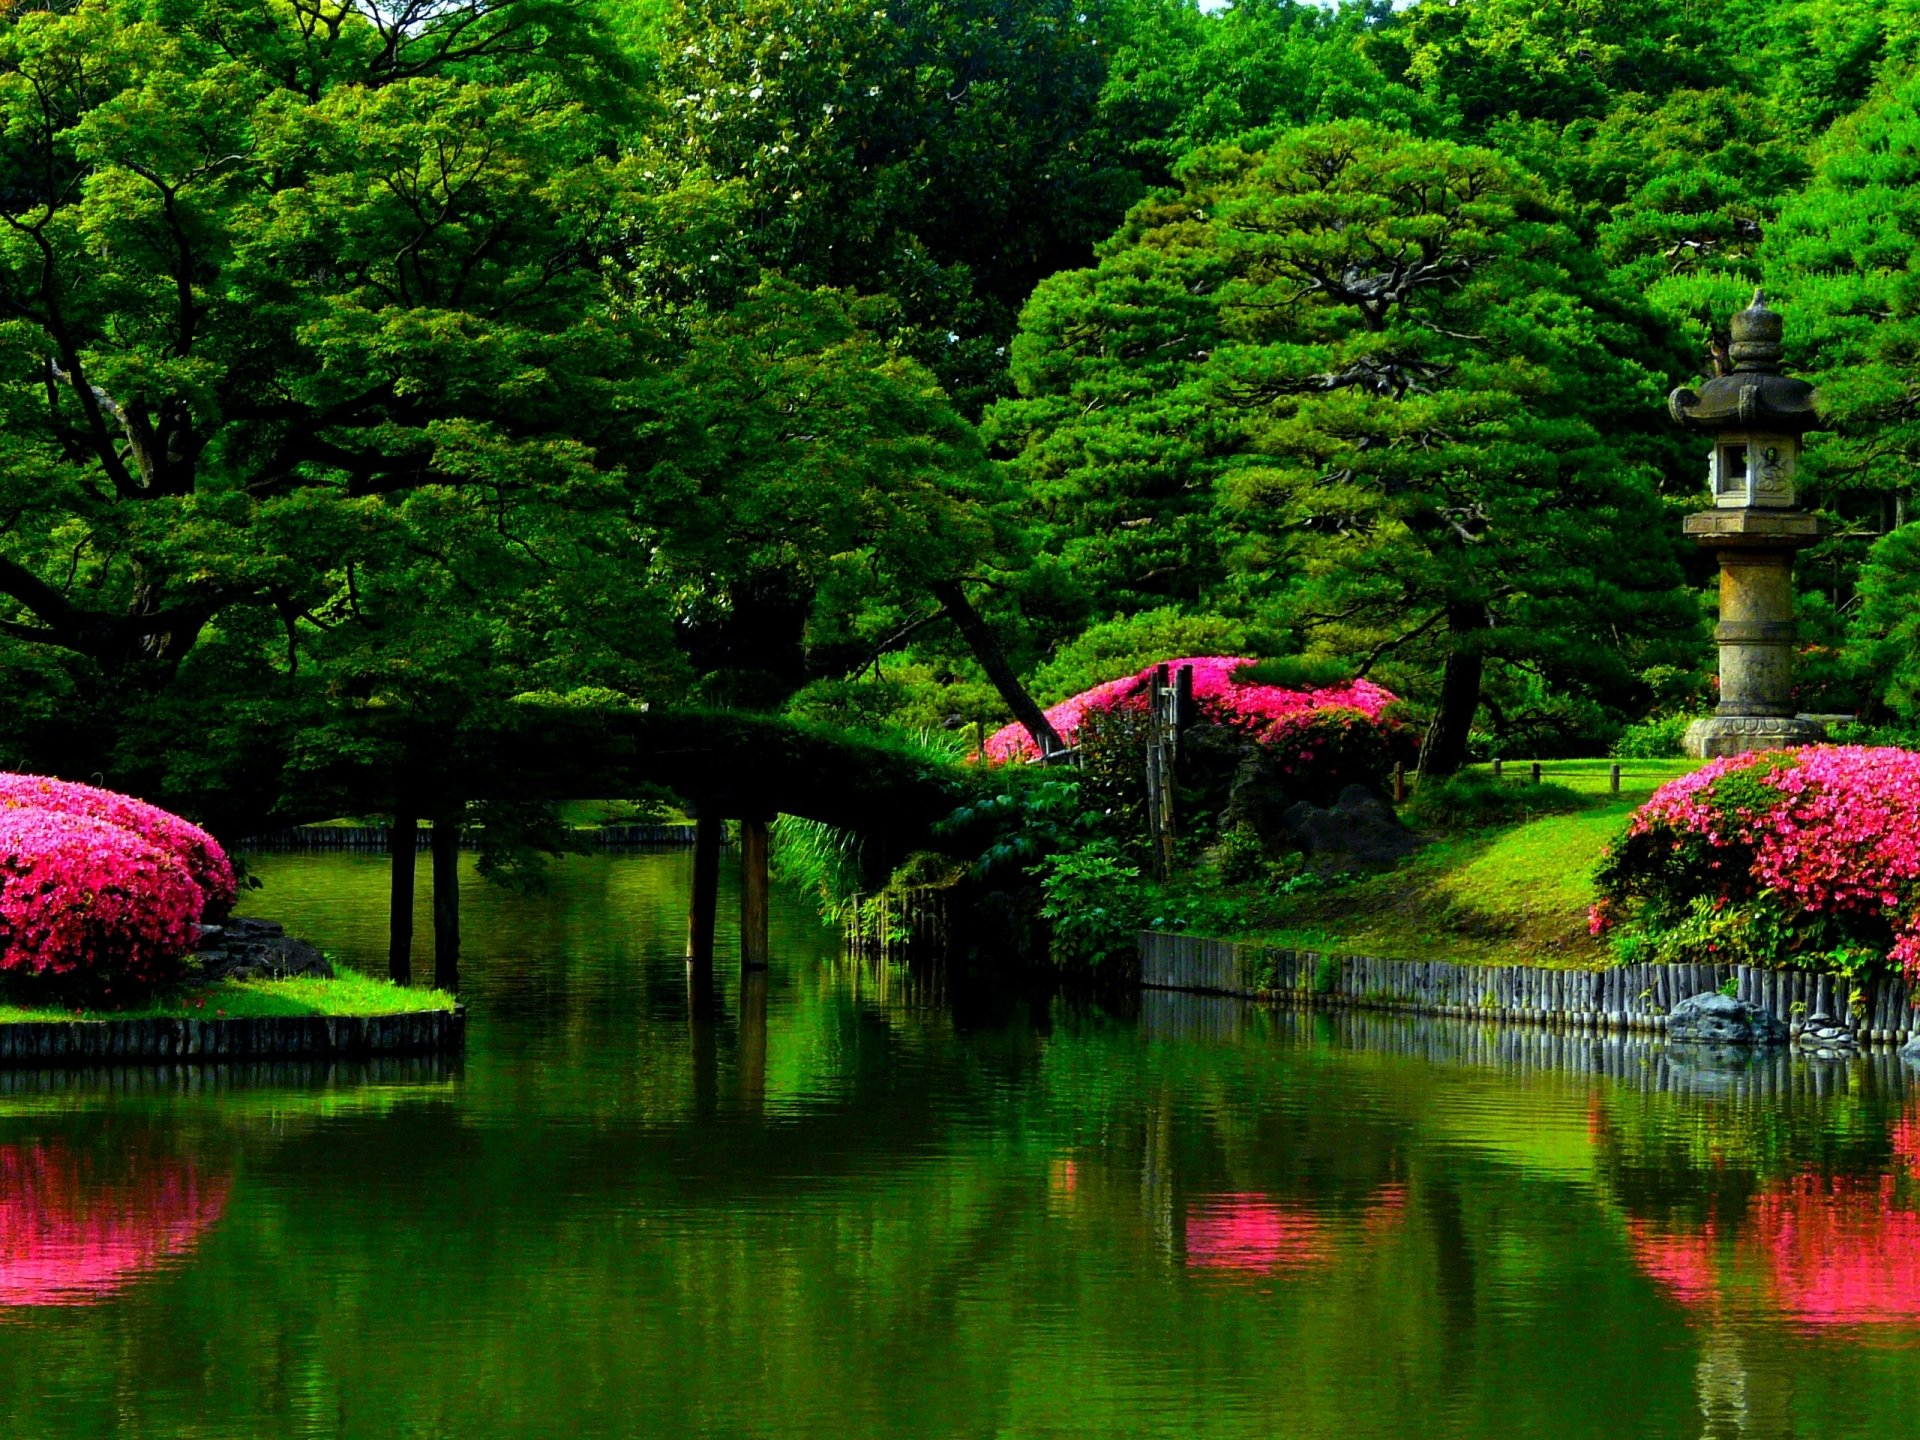 Beautiful Wallpapers For Iphone 6 Plus Bridge In Spring Park Full Hd Wallpaper And Background